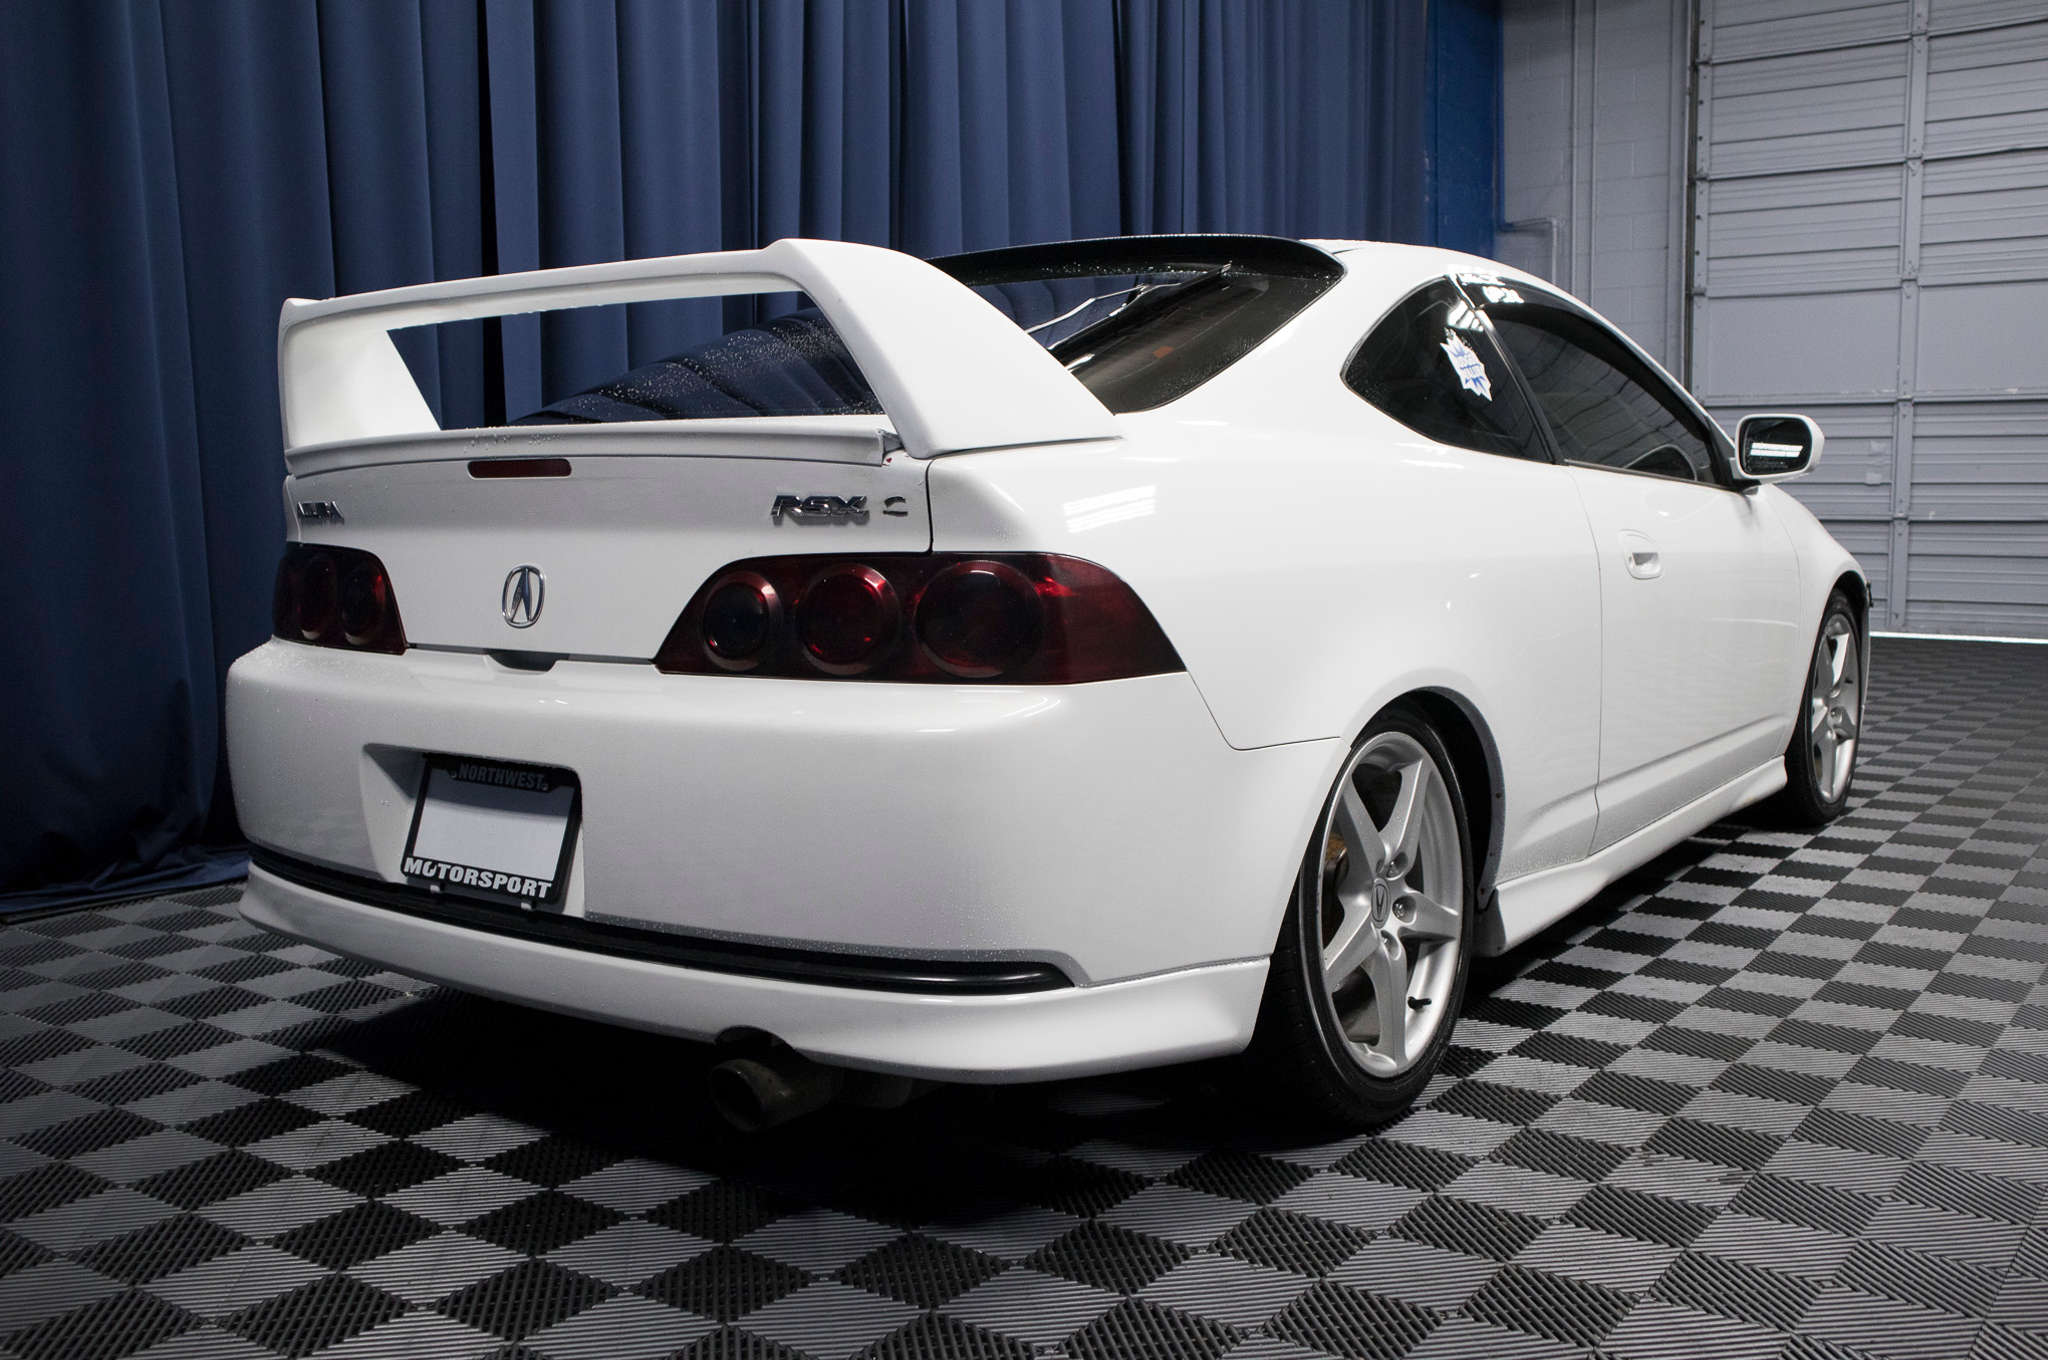 chas s acura sale for type carolina south rsx